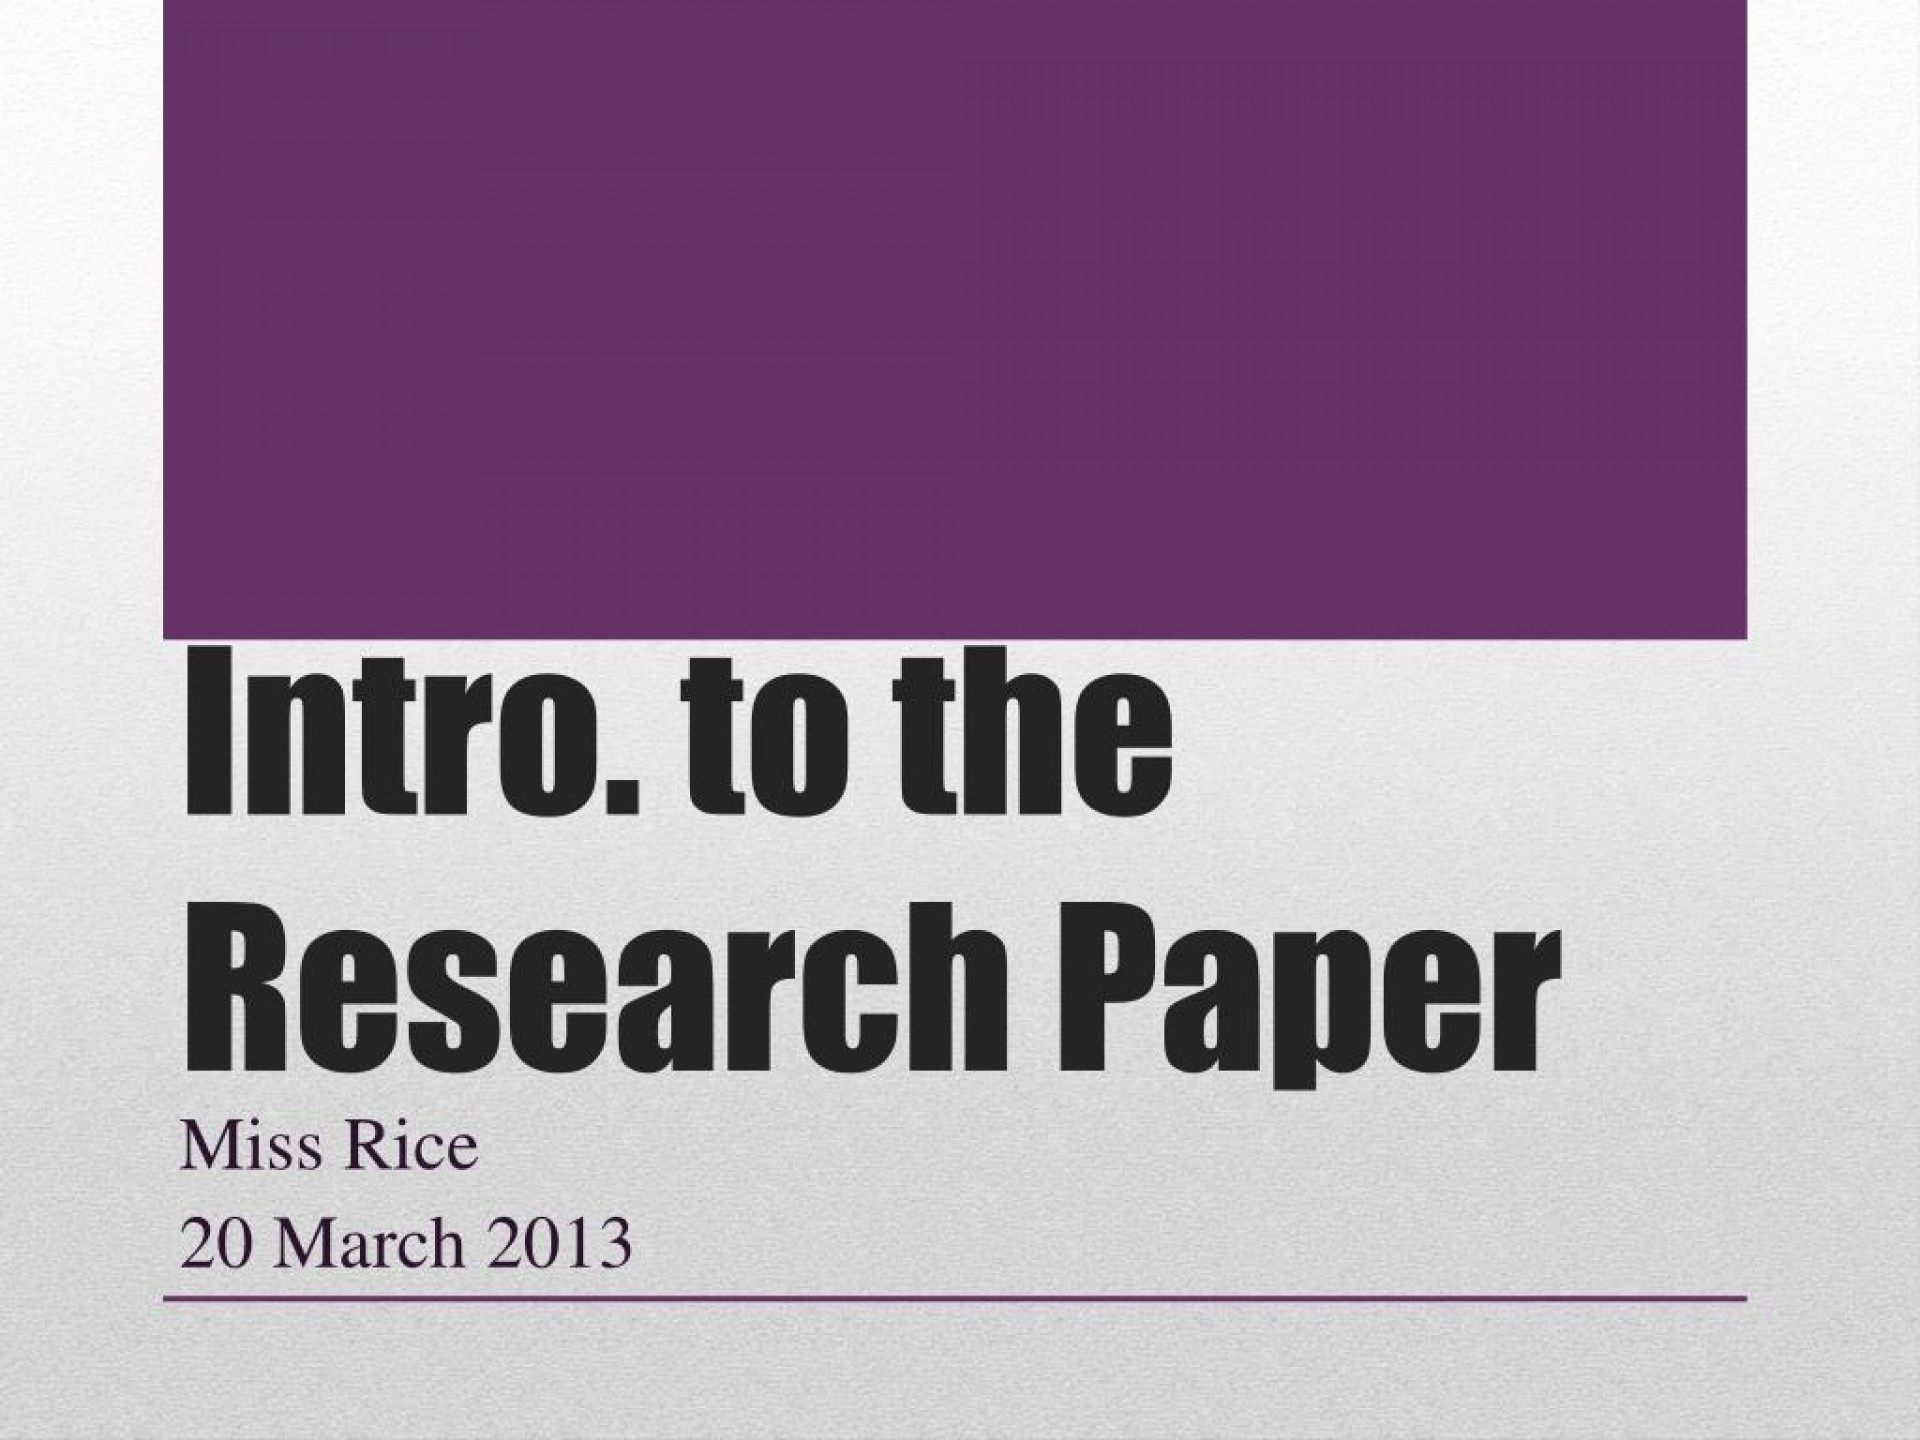 015 Introduction To Research Paper Ppt Intro The Outstanding How Write In An For A Powerpoint 1920